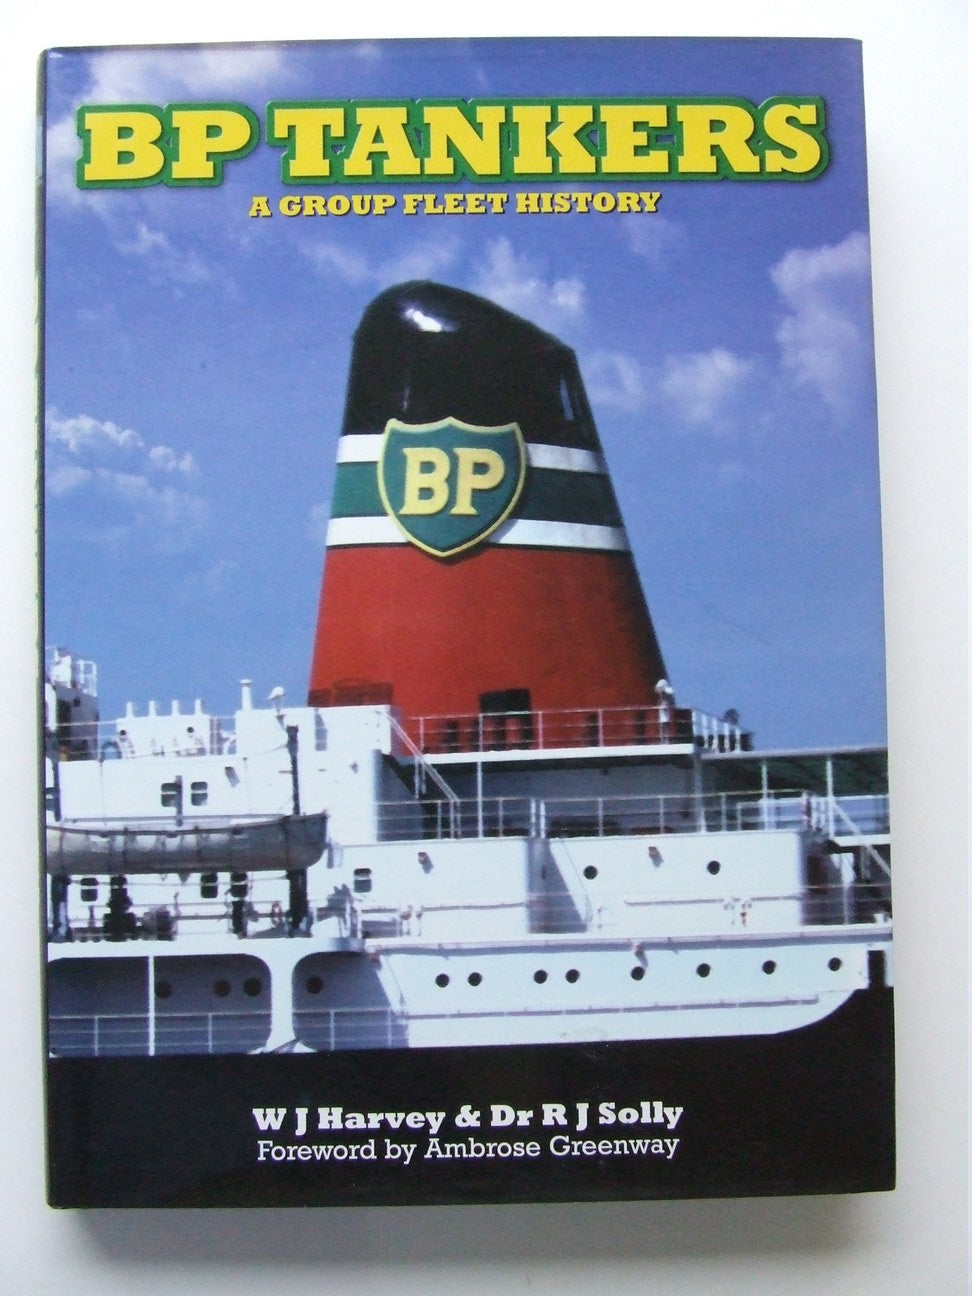 BP Tankers, a group fleet history